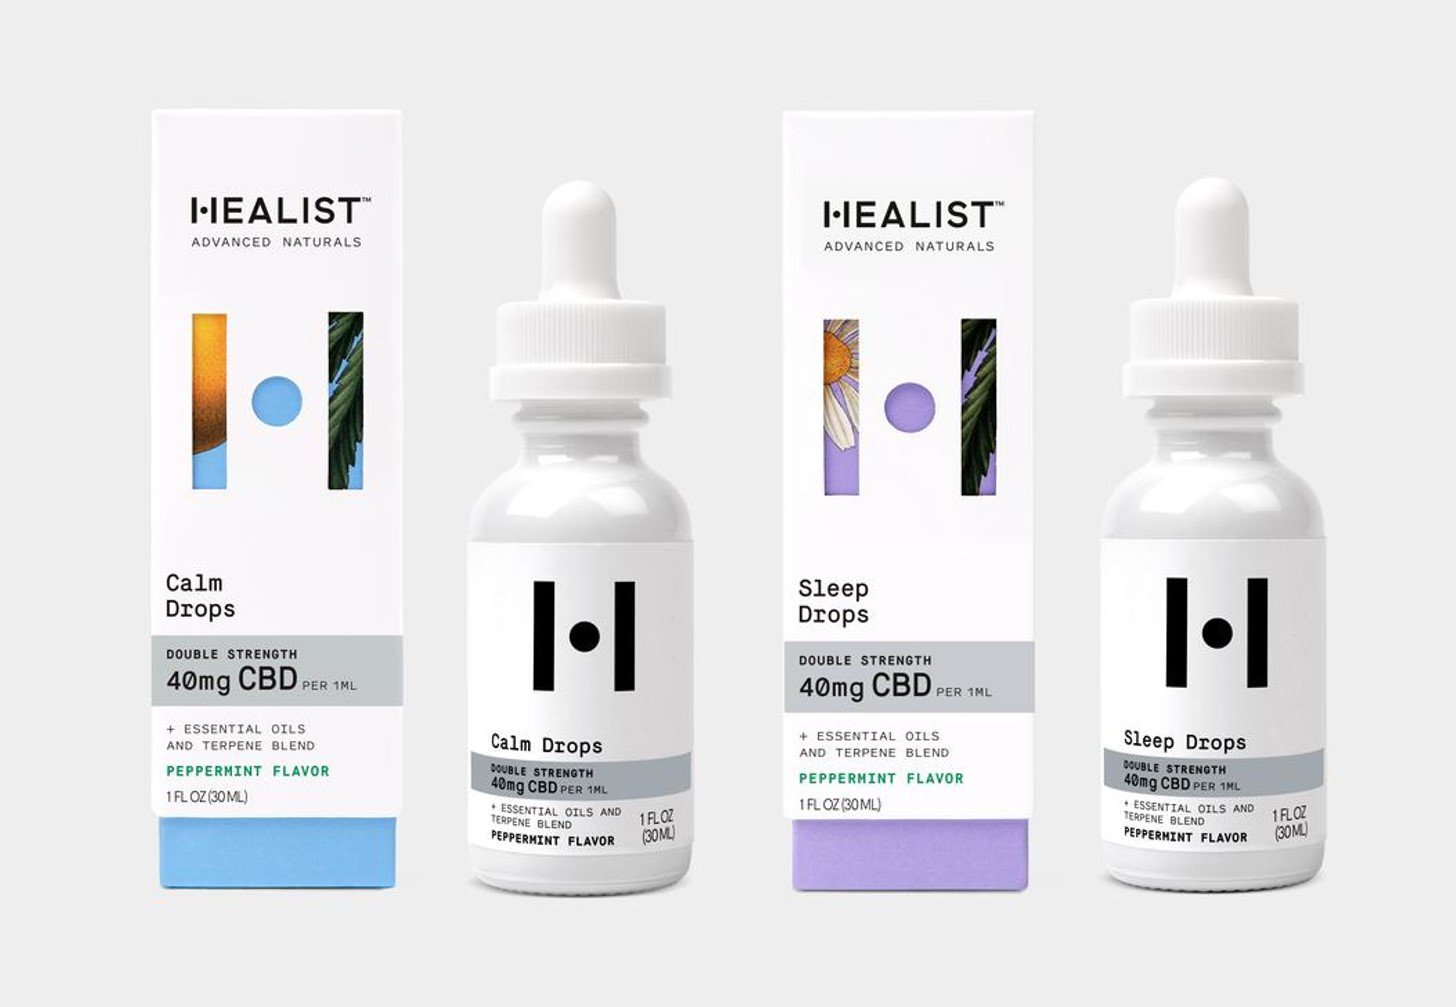 Healist Calm and Sleep Drops Discovery Size: CBD + Clinically Backed Natural Ingredients